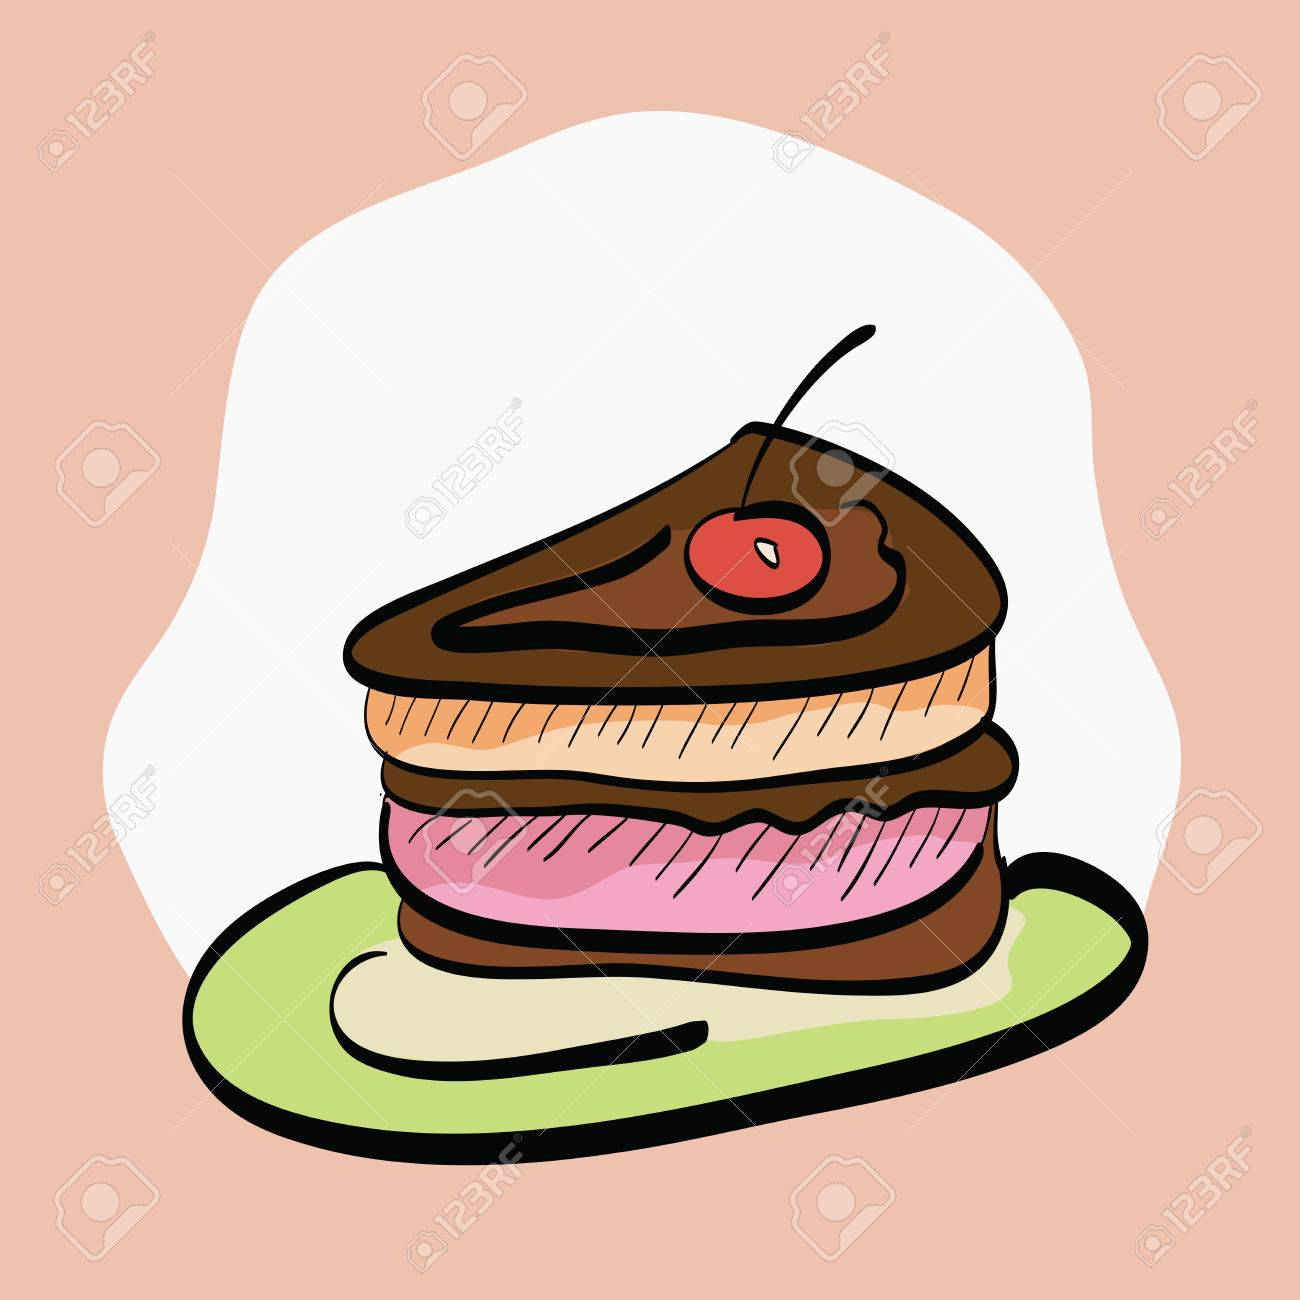 hight resolution of slice of cake hand drawn cartoon clip art illustration stock vector